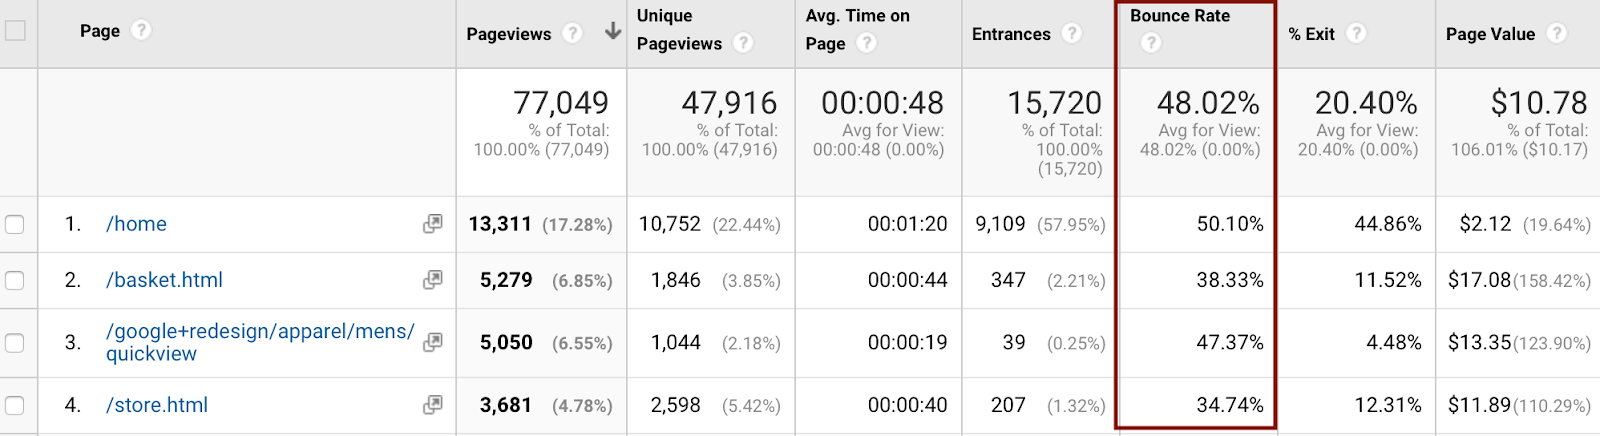 Google analytics dashboard showing bounce rate